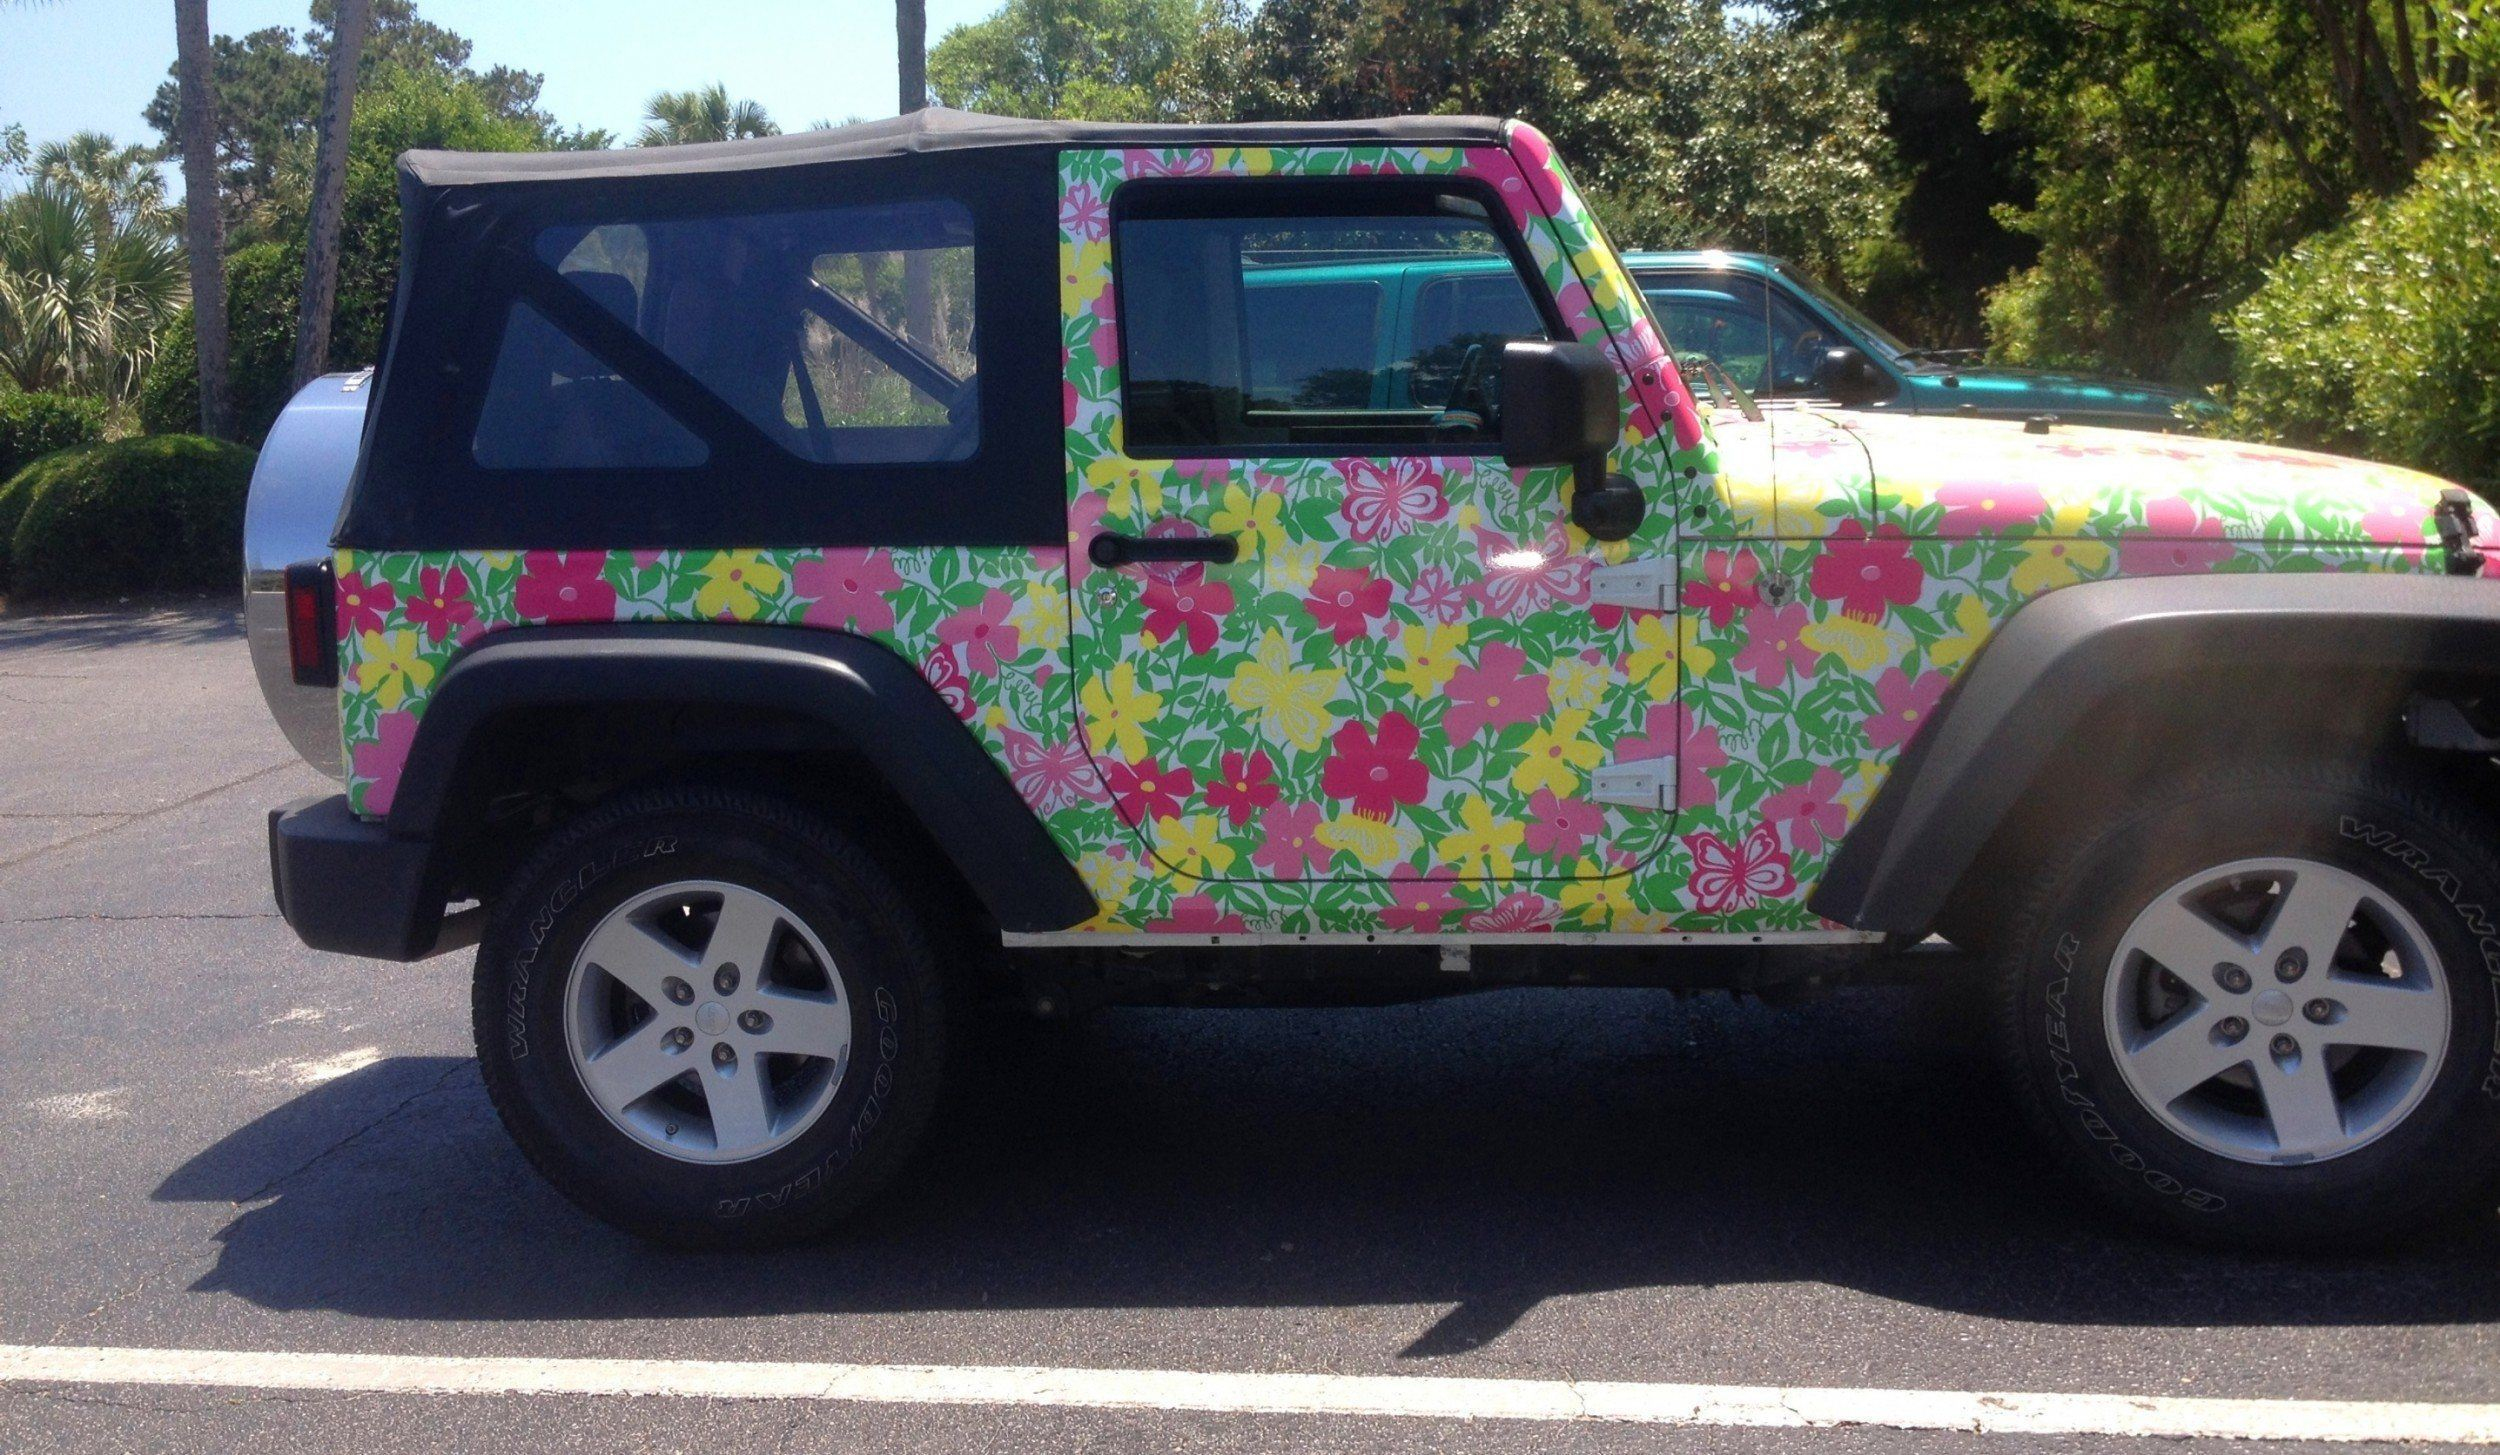 Meet The Jeep Wrangler Lilly Pulitzer Edition